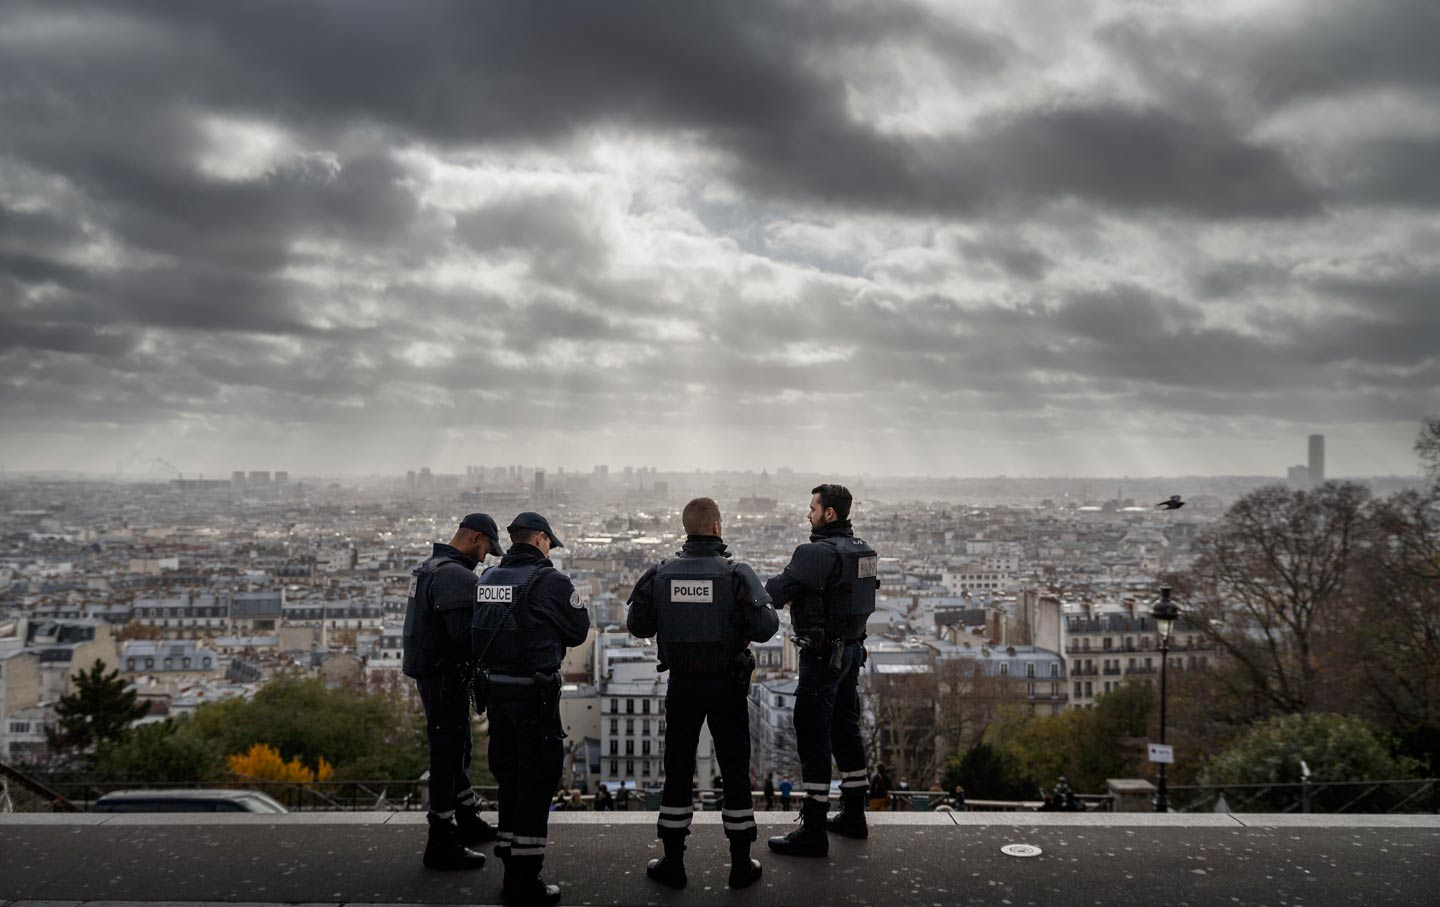 Paris is seen as French Police officers stand on guard near the church of Sacre Coeur, on top of the Montmartre hill, in Paris, Wednesday, November 18, 2015. (AP Photo / Daniel Ochoa de Olza)